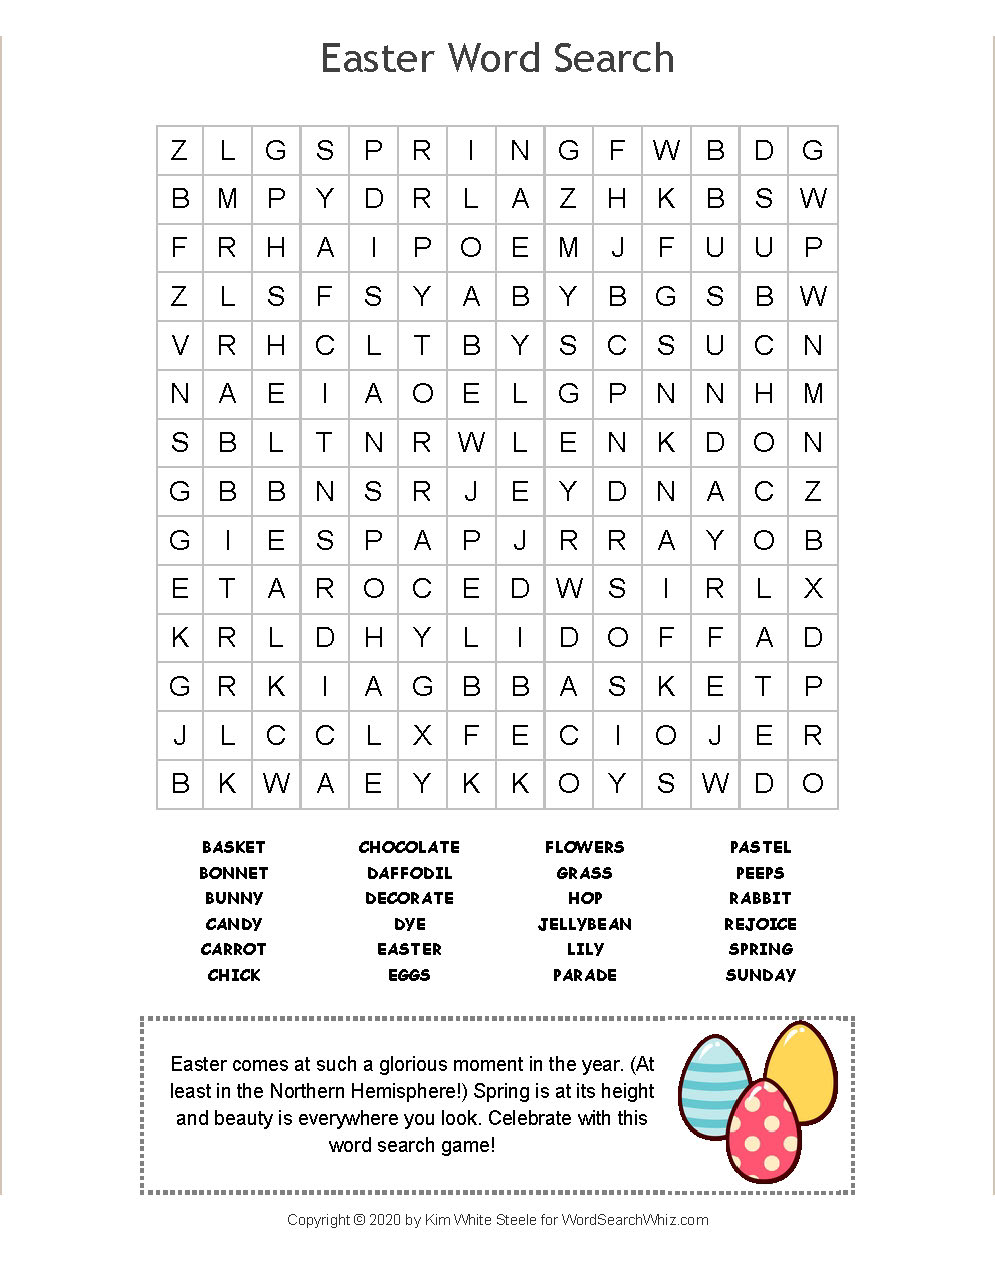 Come Celebrate Easter With This Super Fun Word Search Puzzle Game You Can Either Play Online Or Print It For In 2020 Word Search Puzzles Cool Words Word Search Games